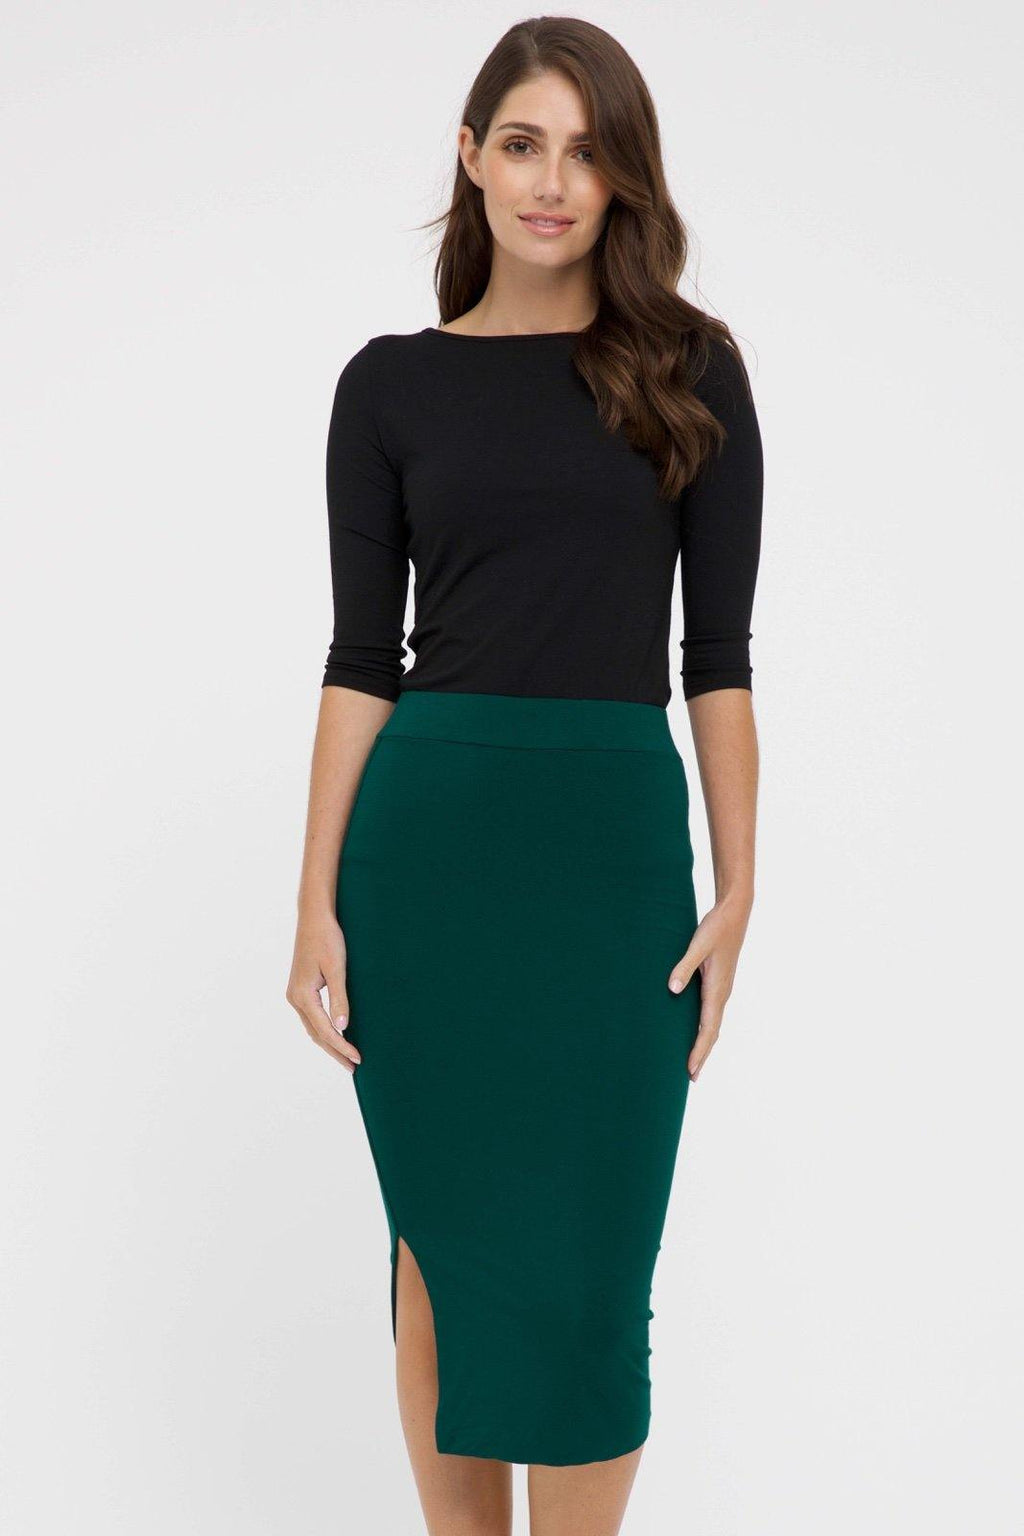 Bamboo Body Nina Side Split Skirt - Dark Emerald | Buy Online at Weekends